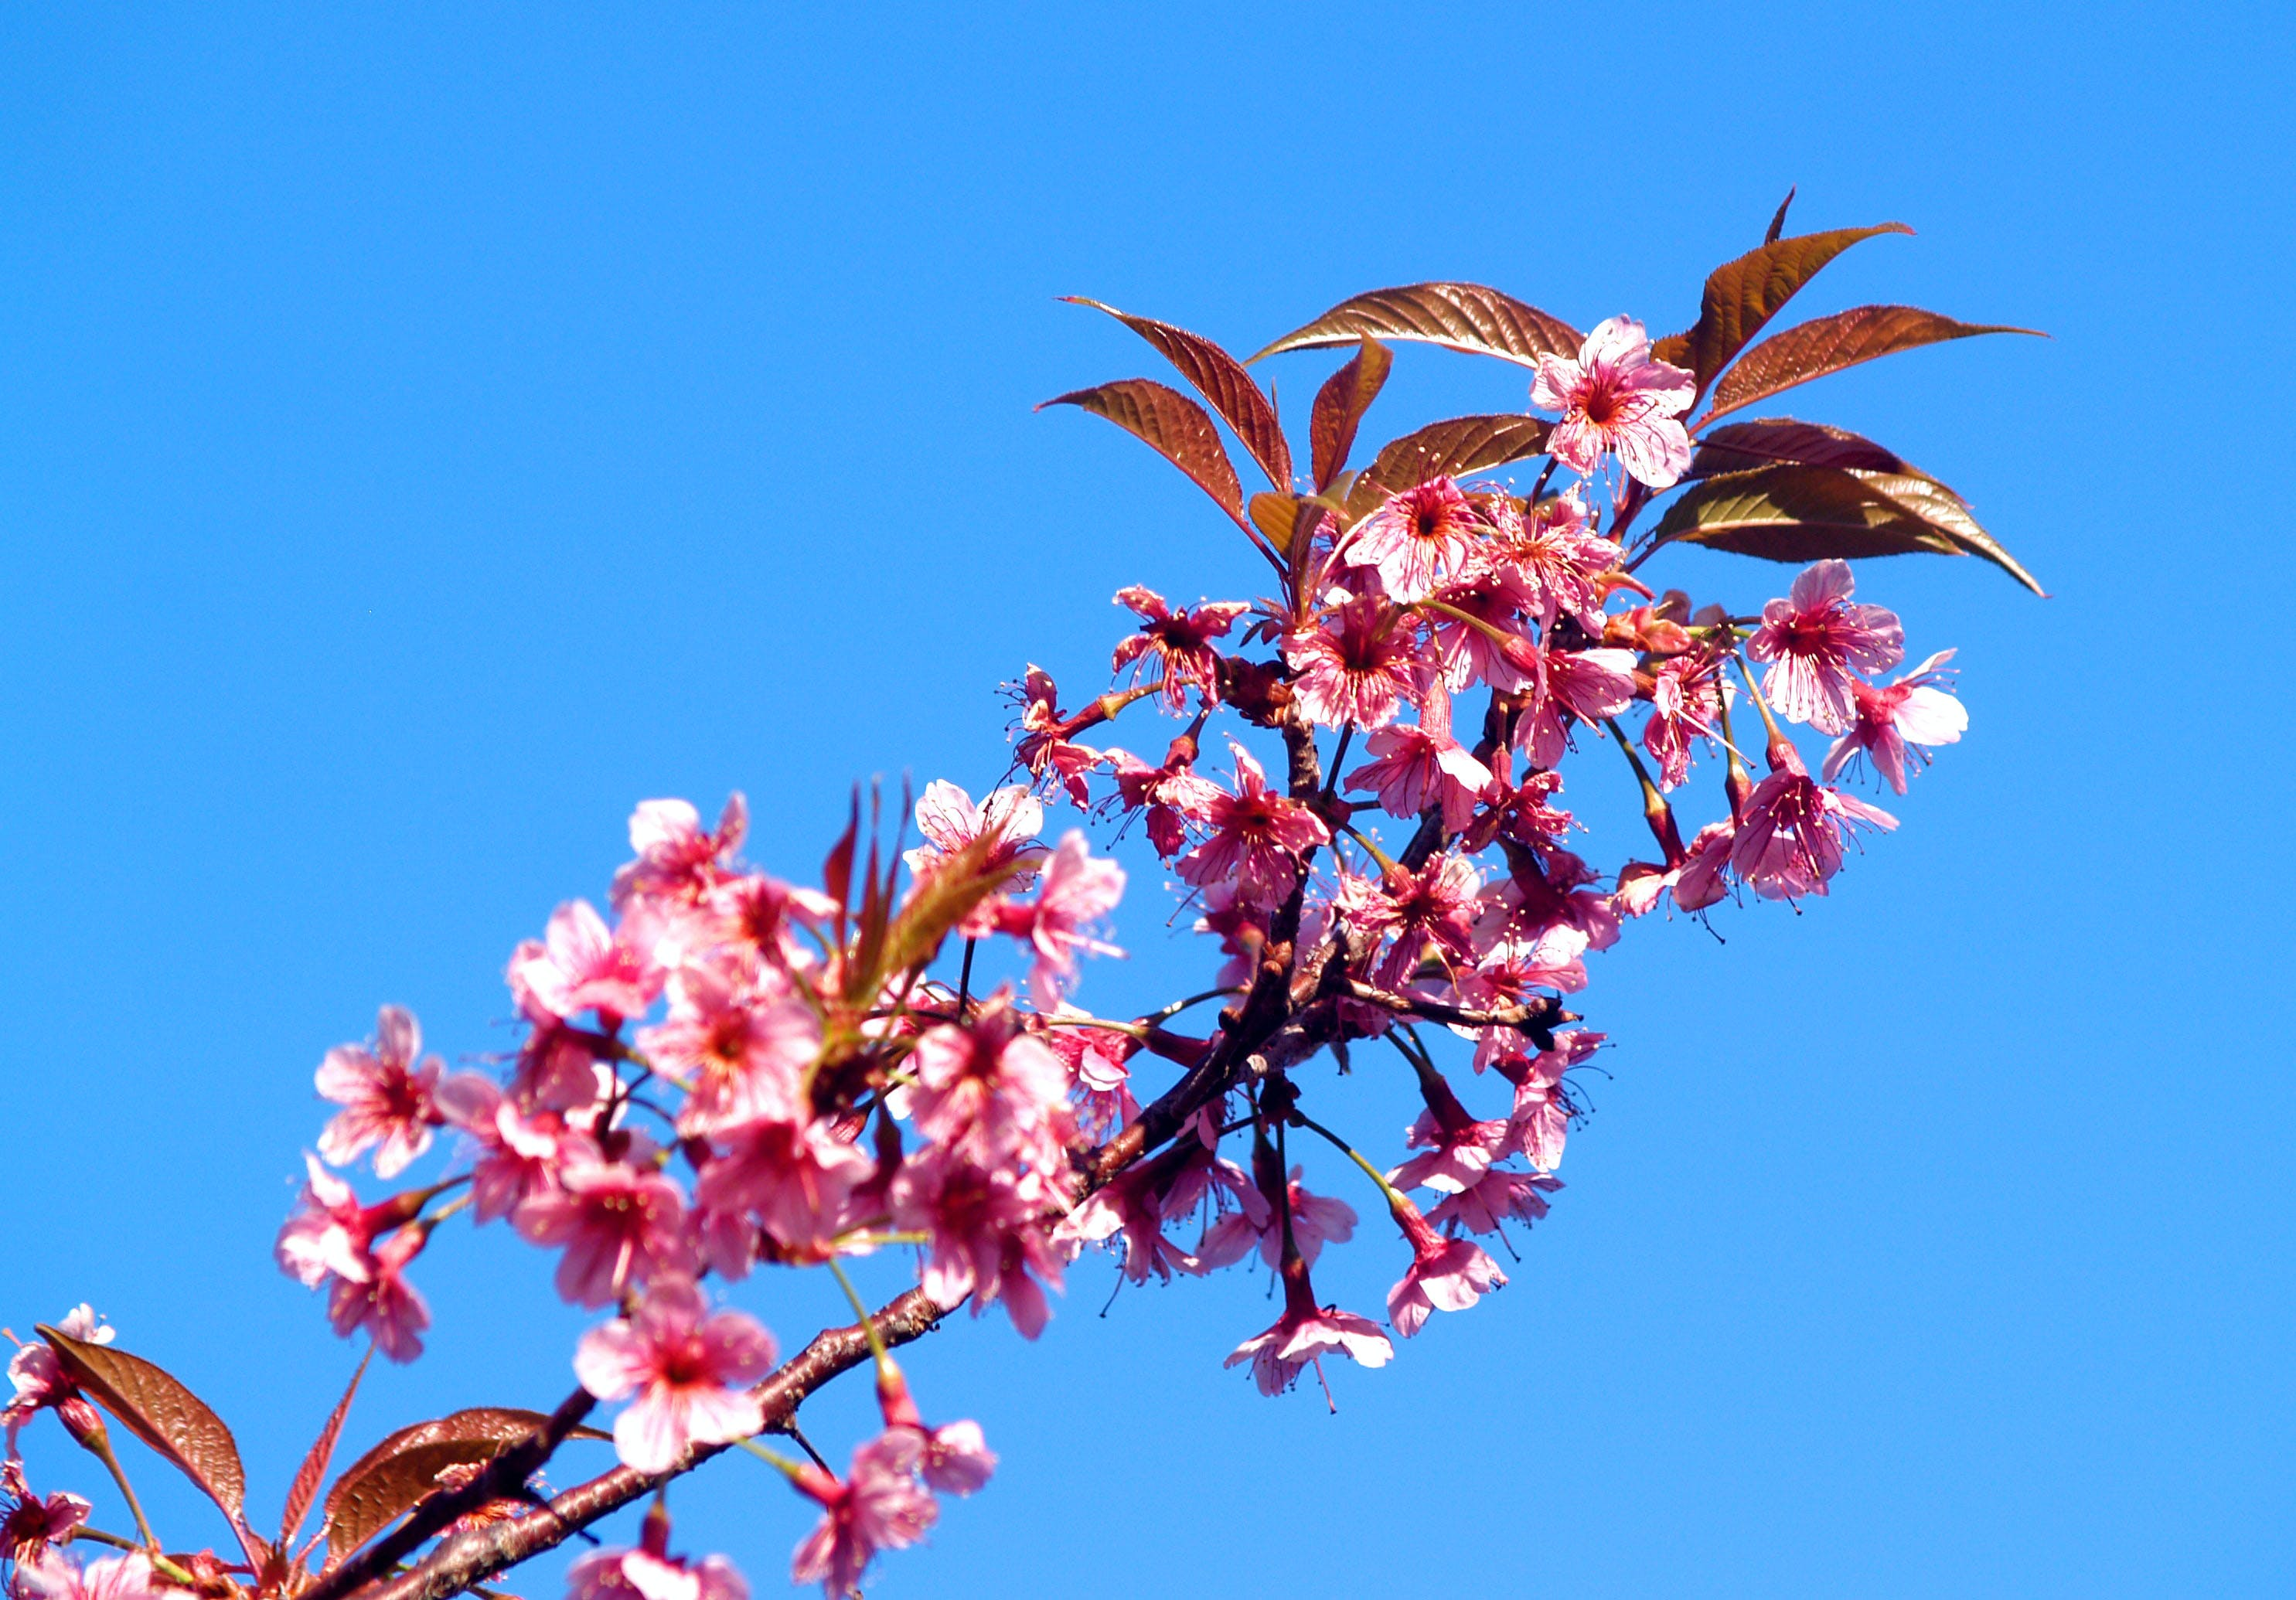 Free stock photo of nature, sky, flowers, petals